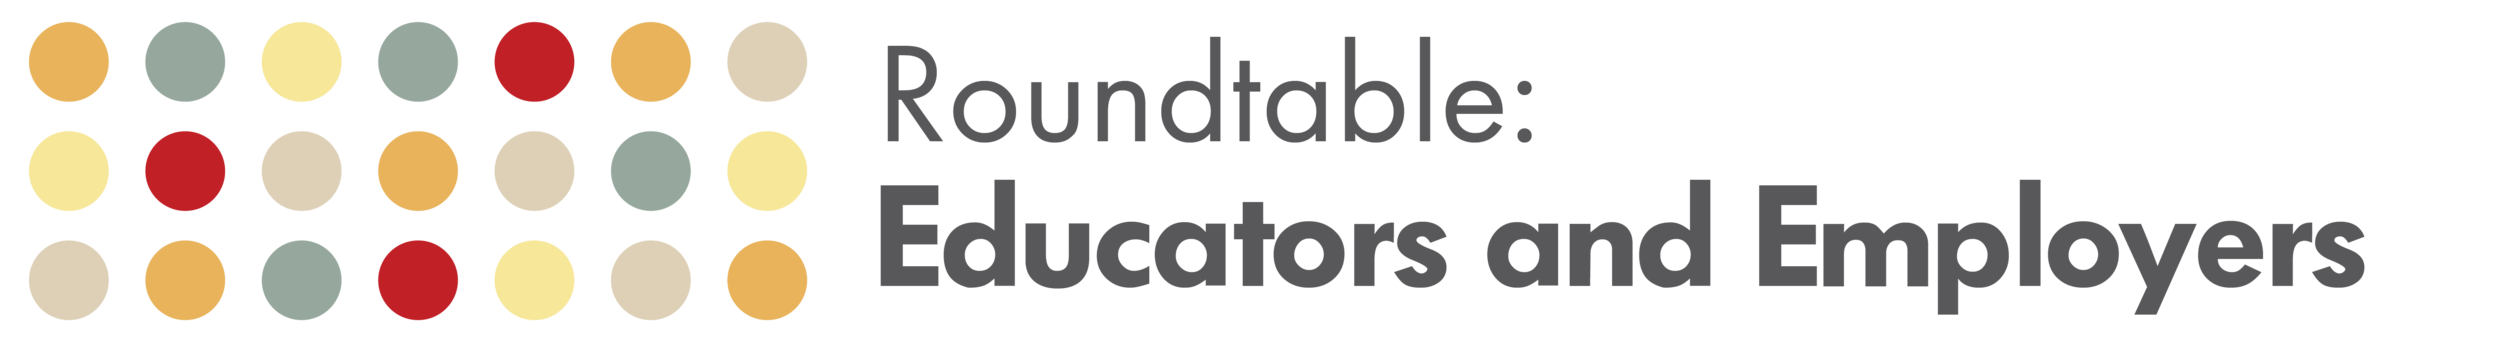 Web Header_Educators and Employers 2019_v1.png